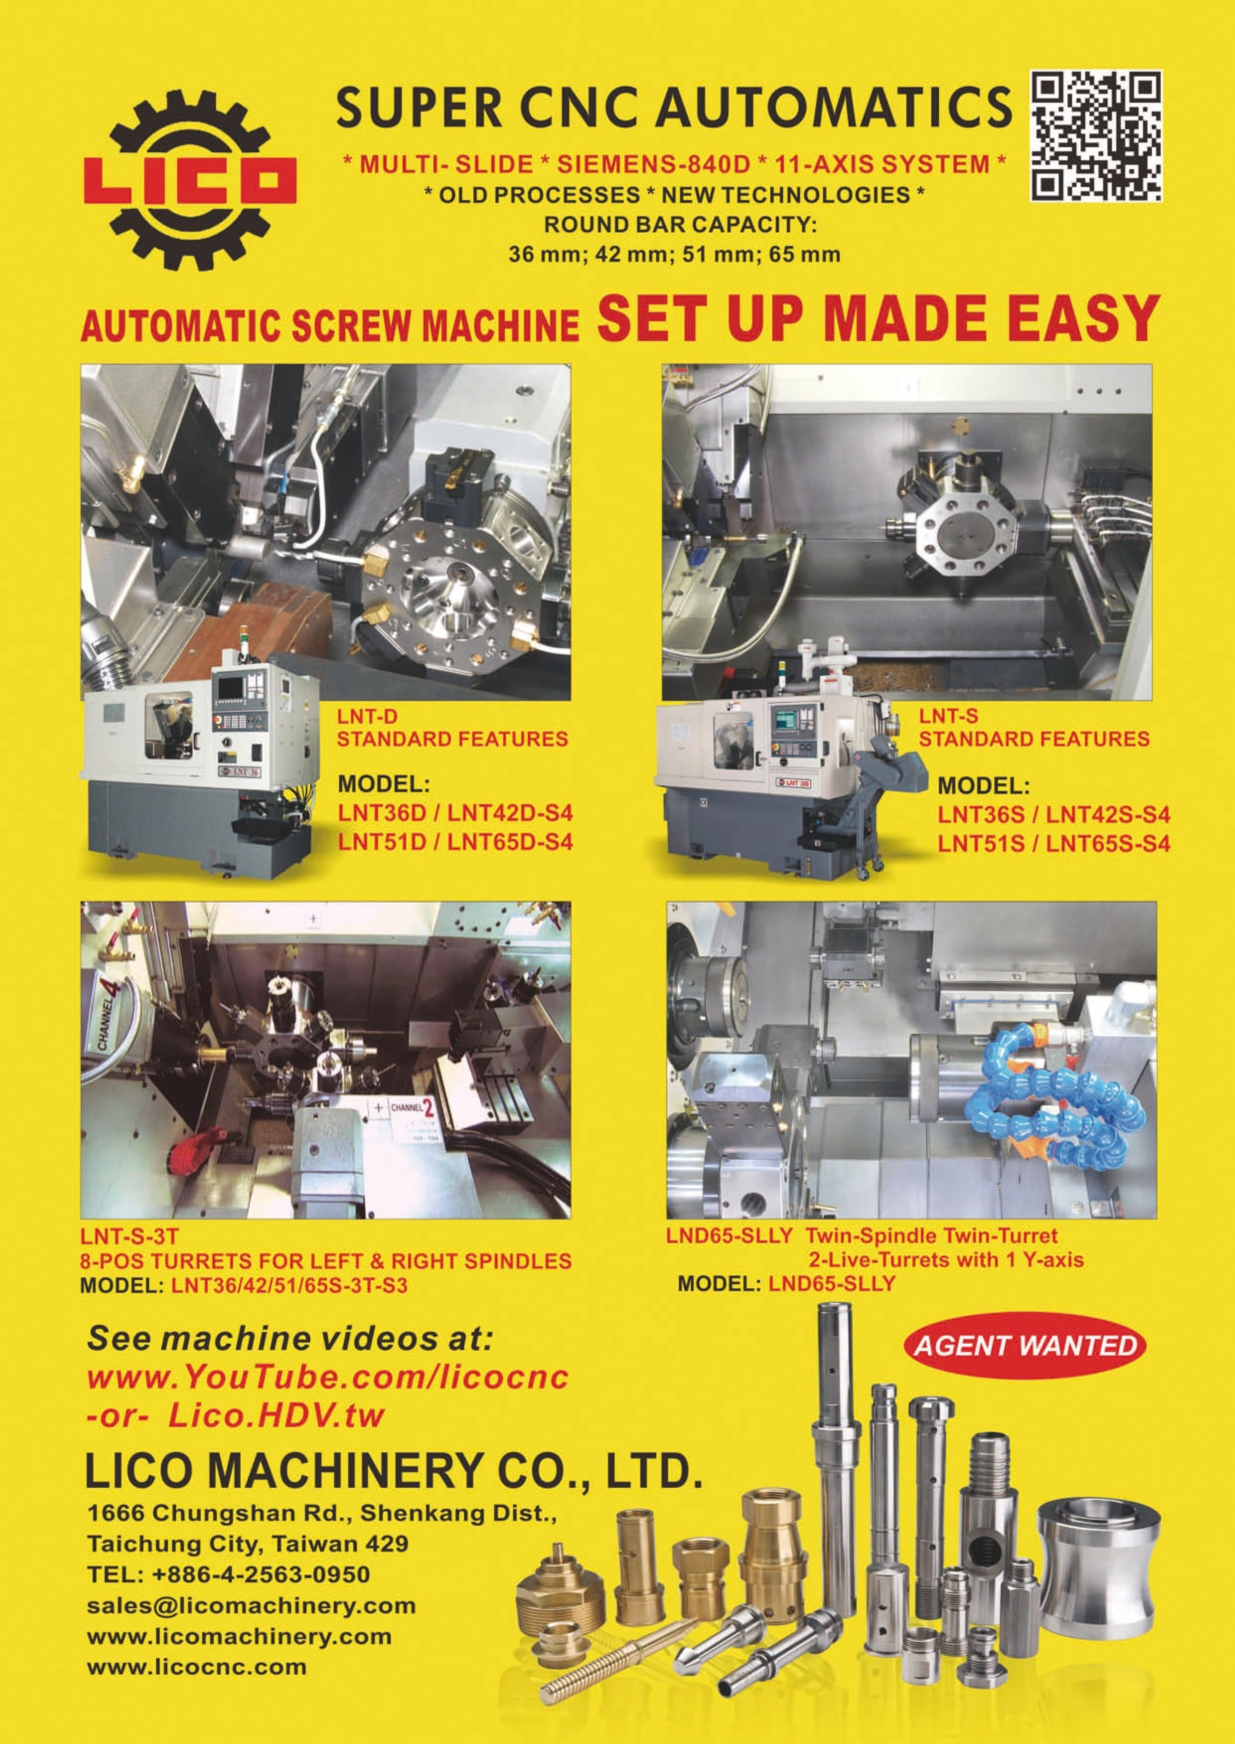 Who Makes Machinery in Taiwan LICO MACHINERY CO., LTD.